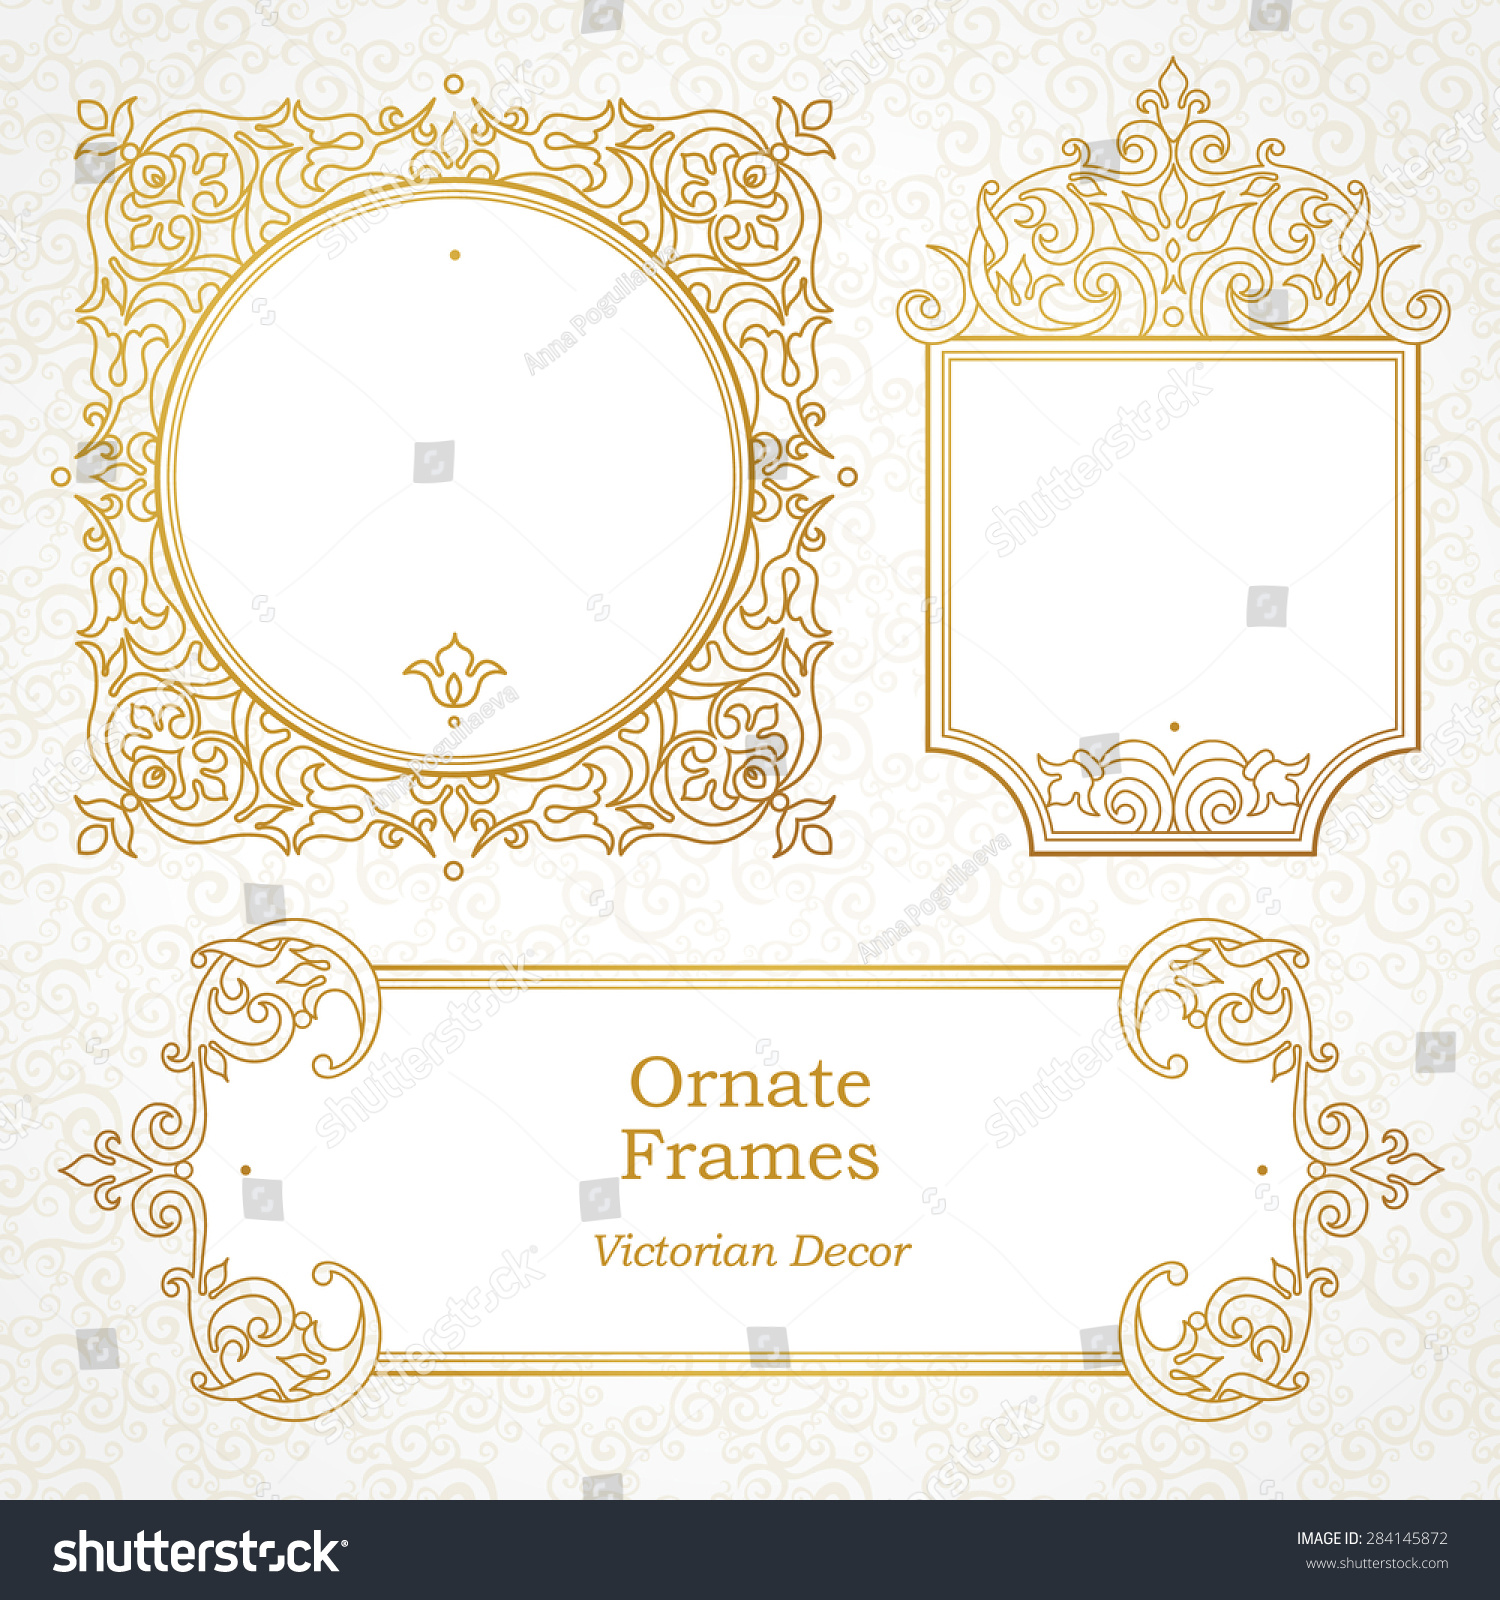 I Designed A Vintage Looking Border Art For You To Use In: Vector Decorative Frame In Victorian Style. Elegant